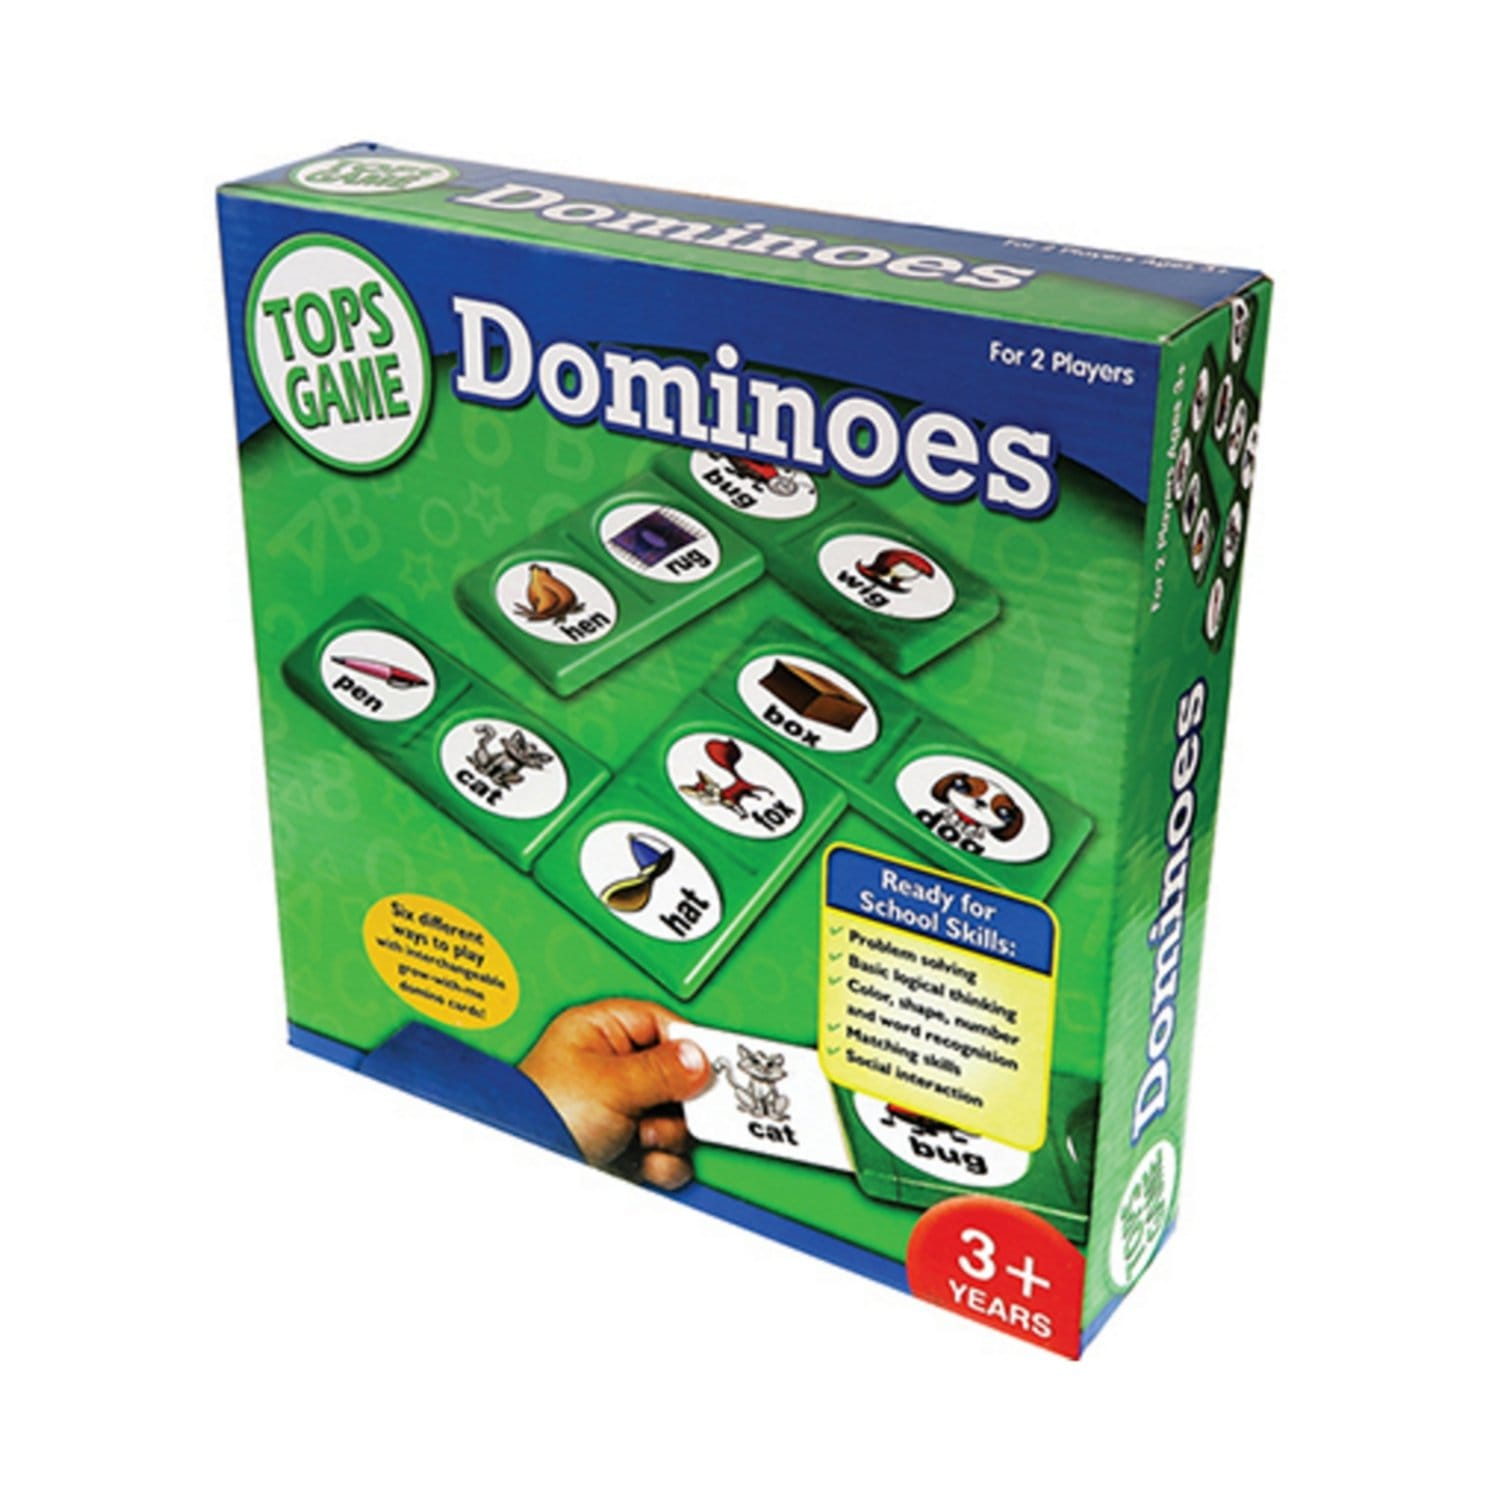 HiQ Toys Dominoes Oyunu